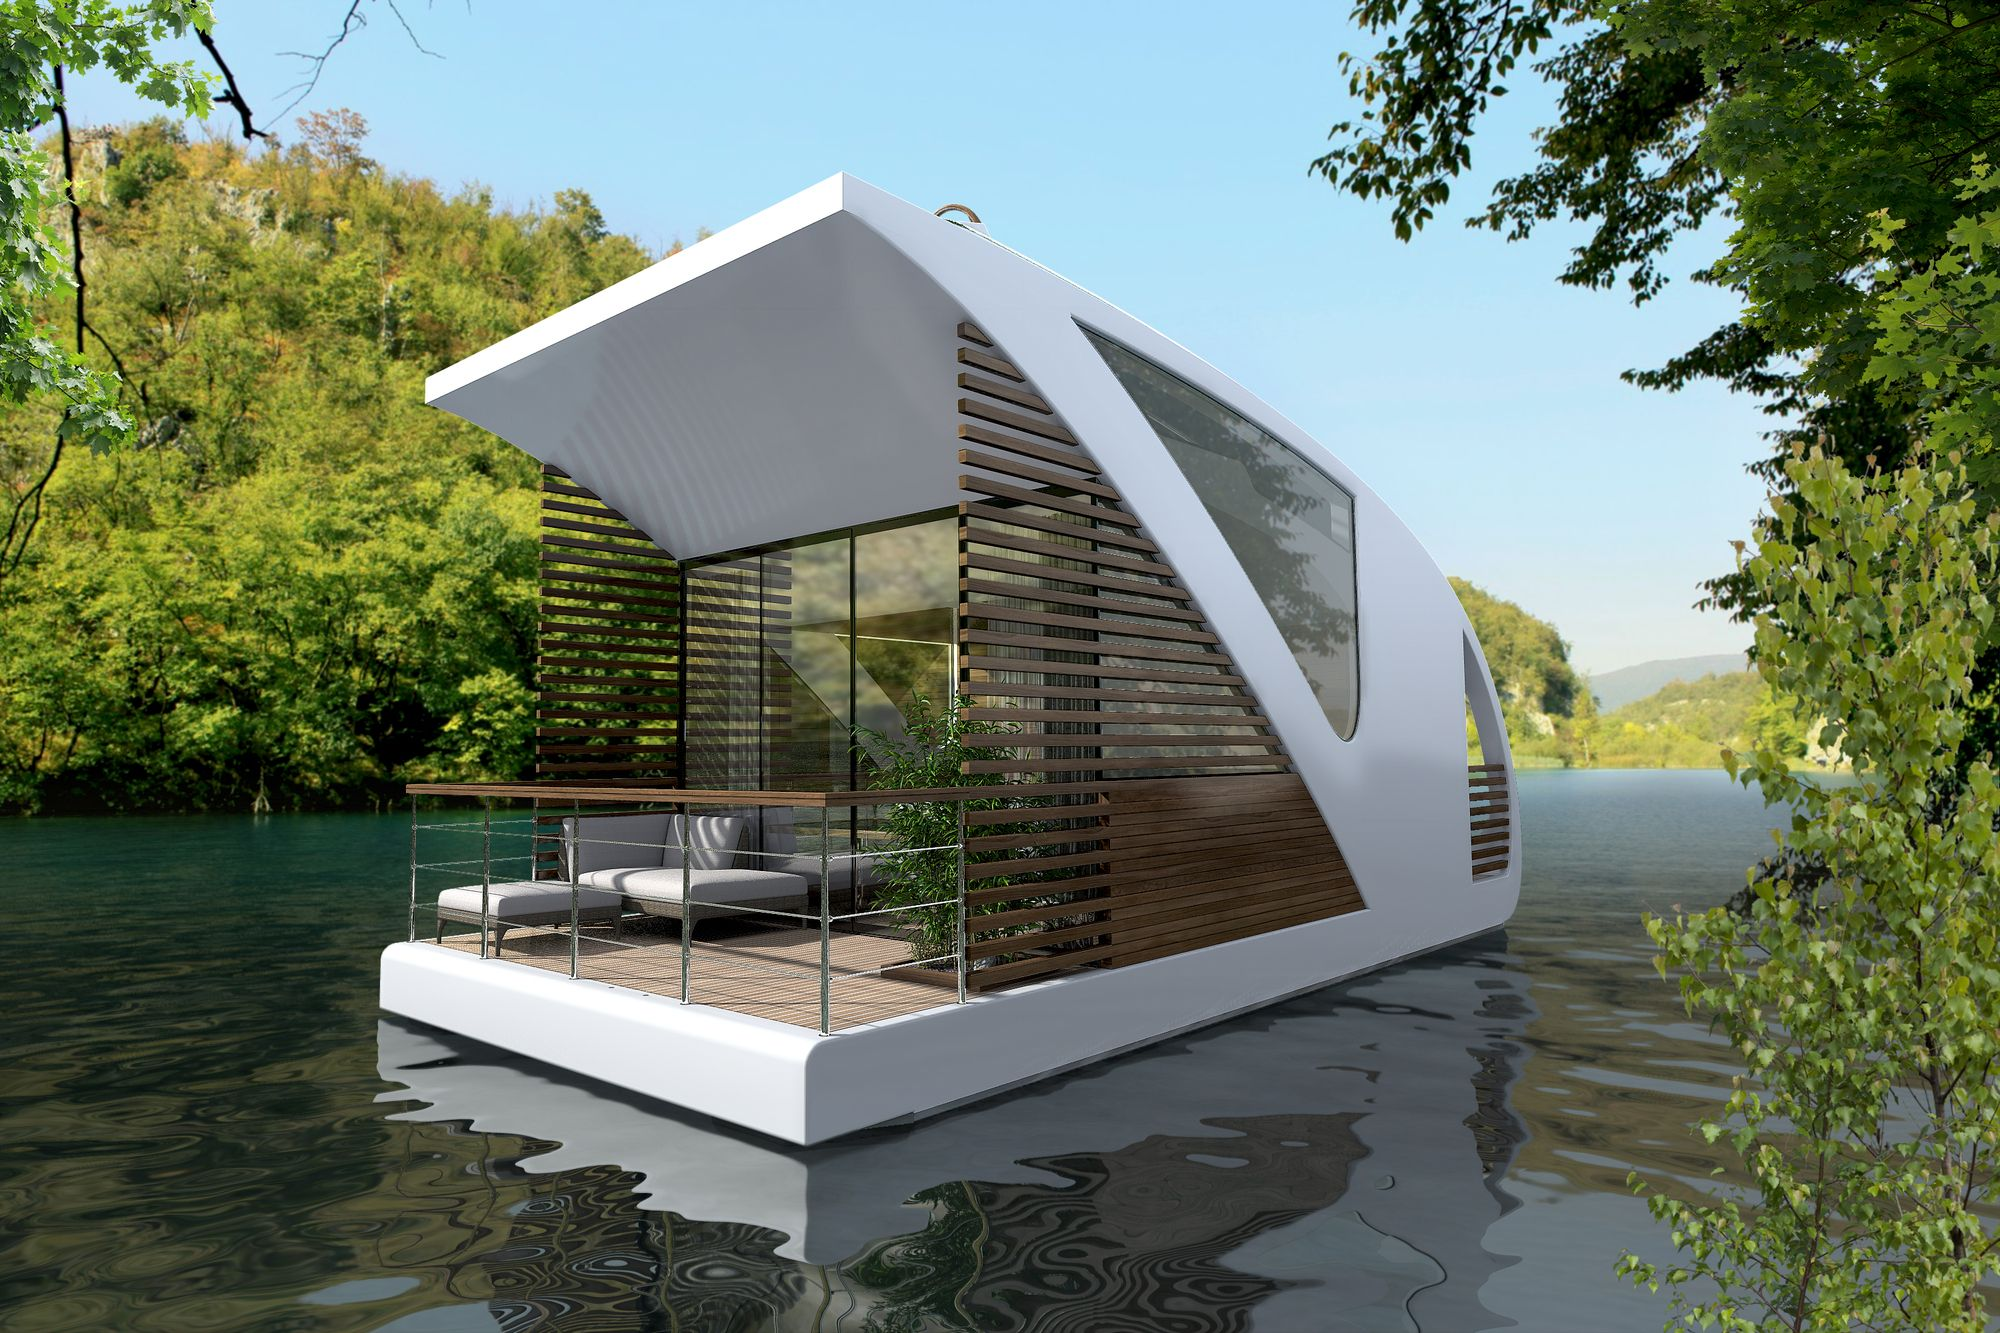 Gallery Of Salt Water Design Floating Hotel With Catamaran Apartments 4 With Images Floating Hotel Floating House Water Architecture